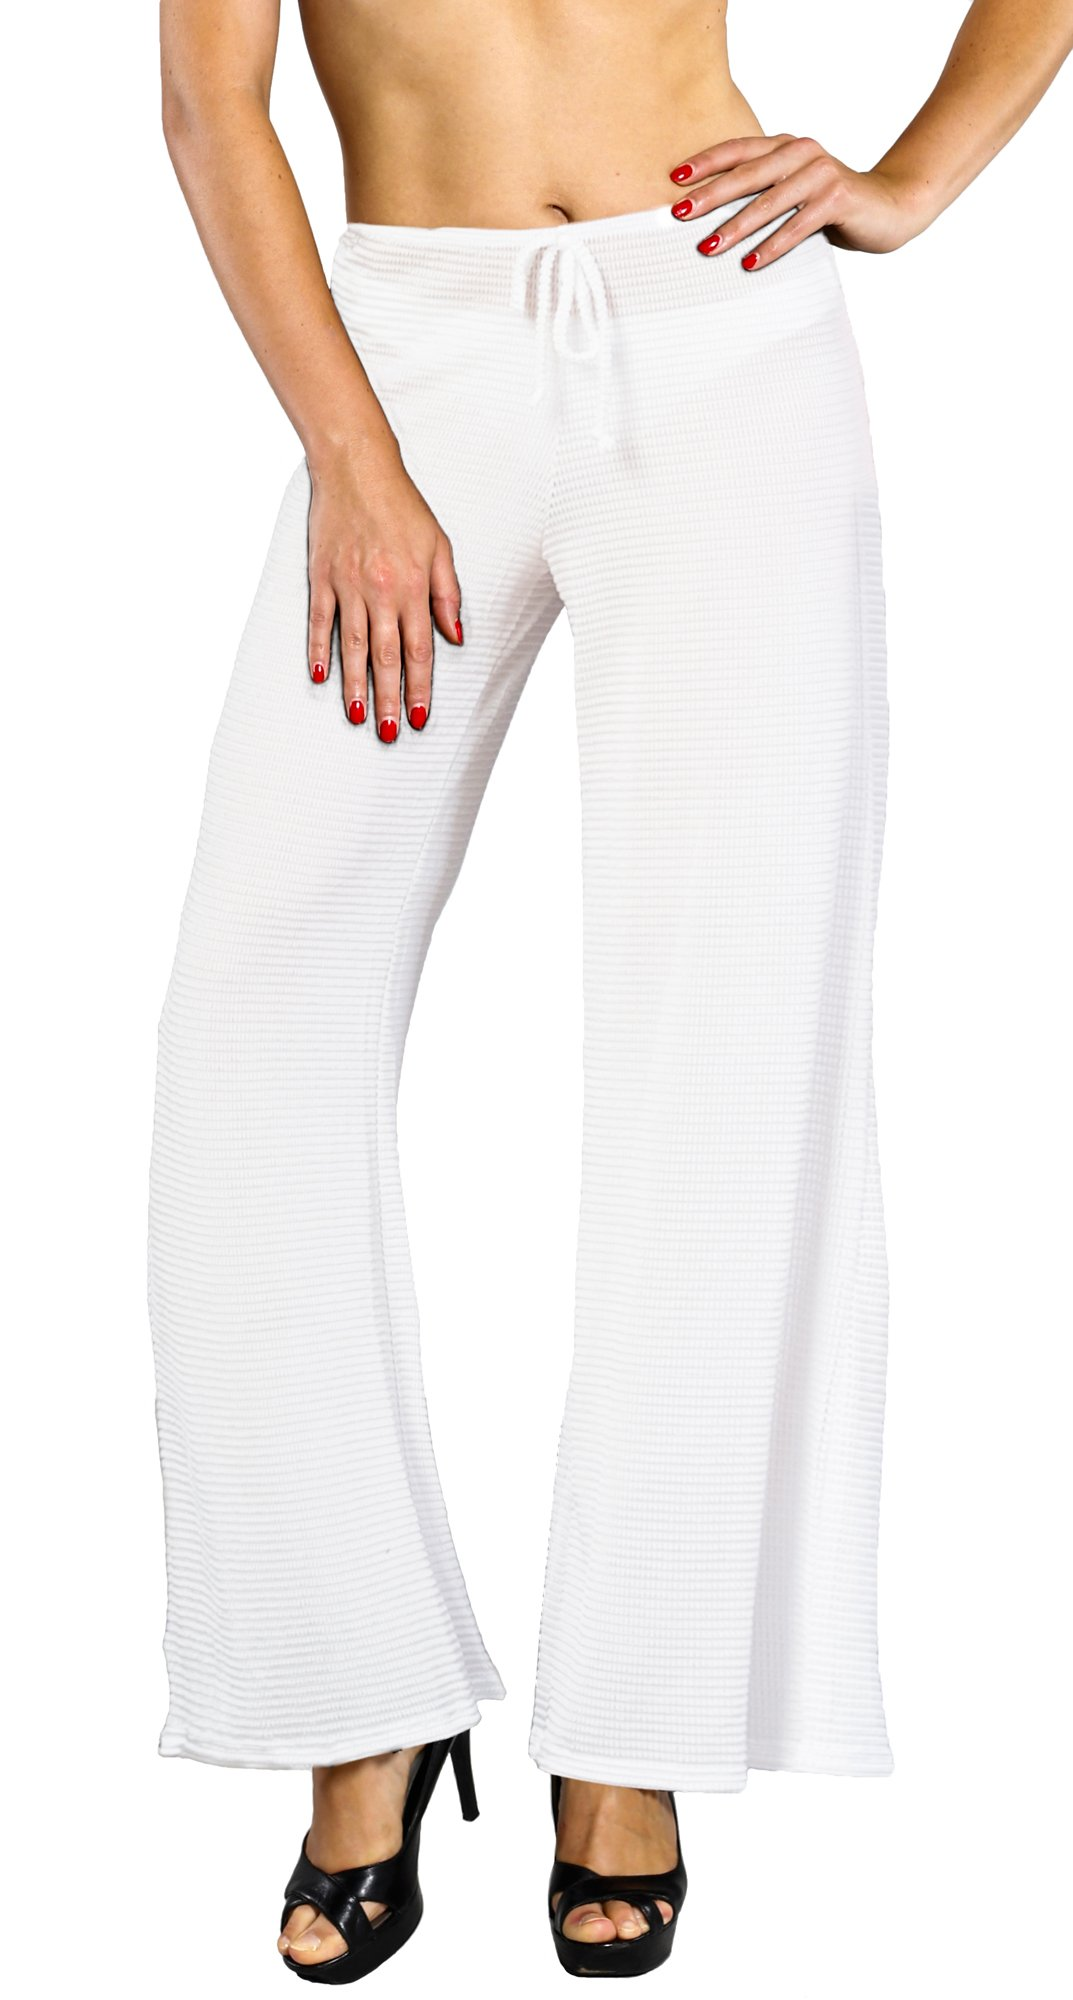 PULL ON PANT (Large, White)